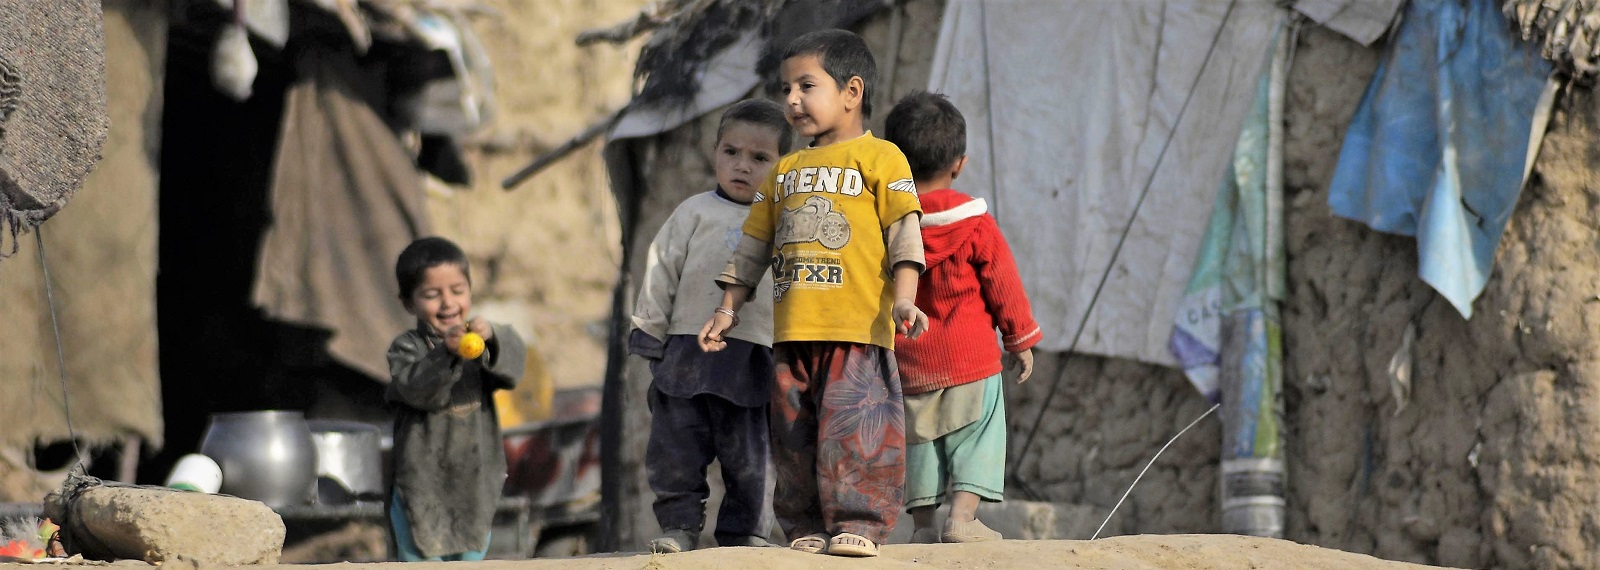 Afghan refugee children in Islamabad, Pakistan on December 3, 2016 (Photo: Muhammad Reza/Anadolu Agency/Getty Images)